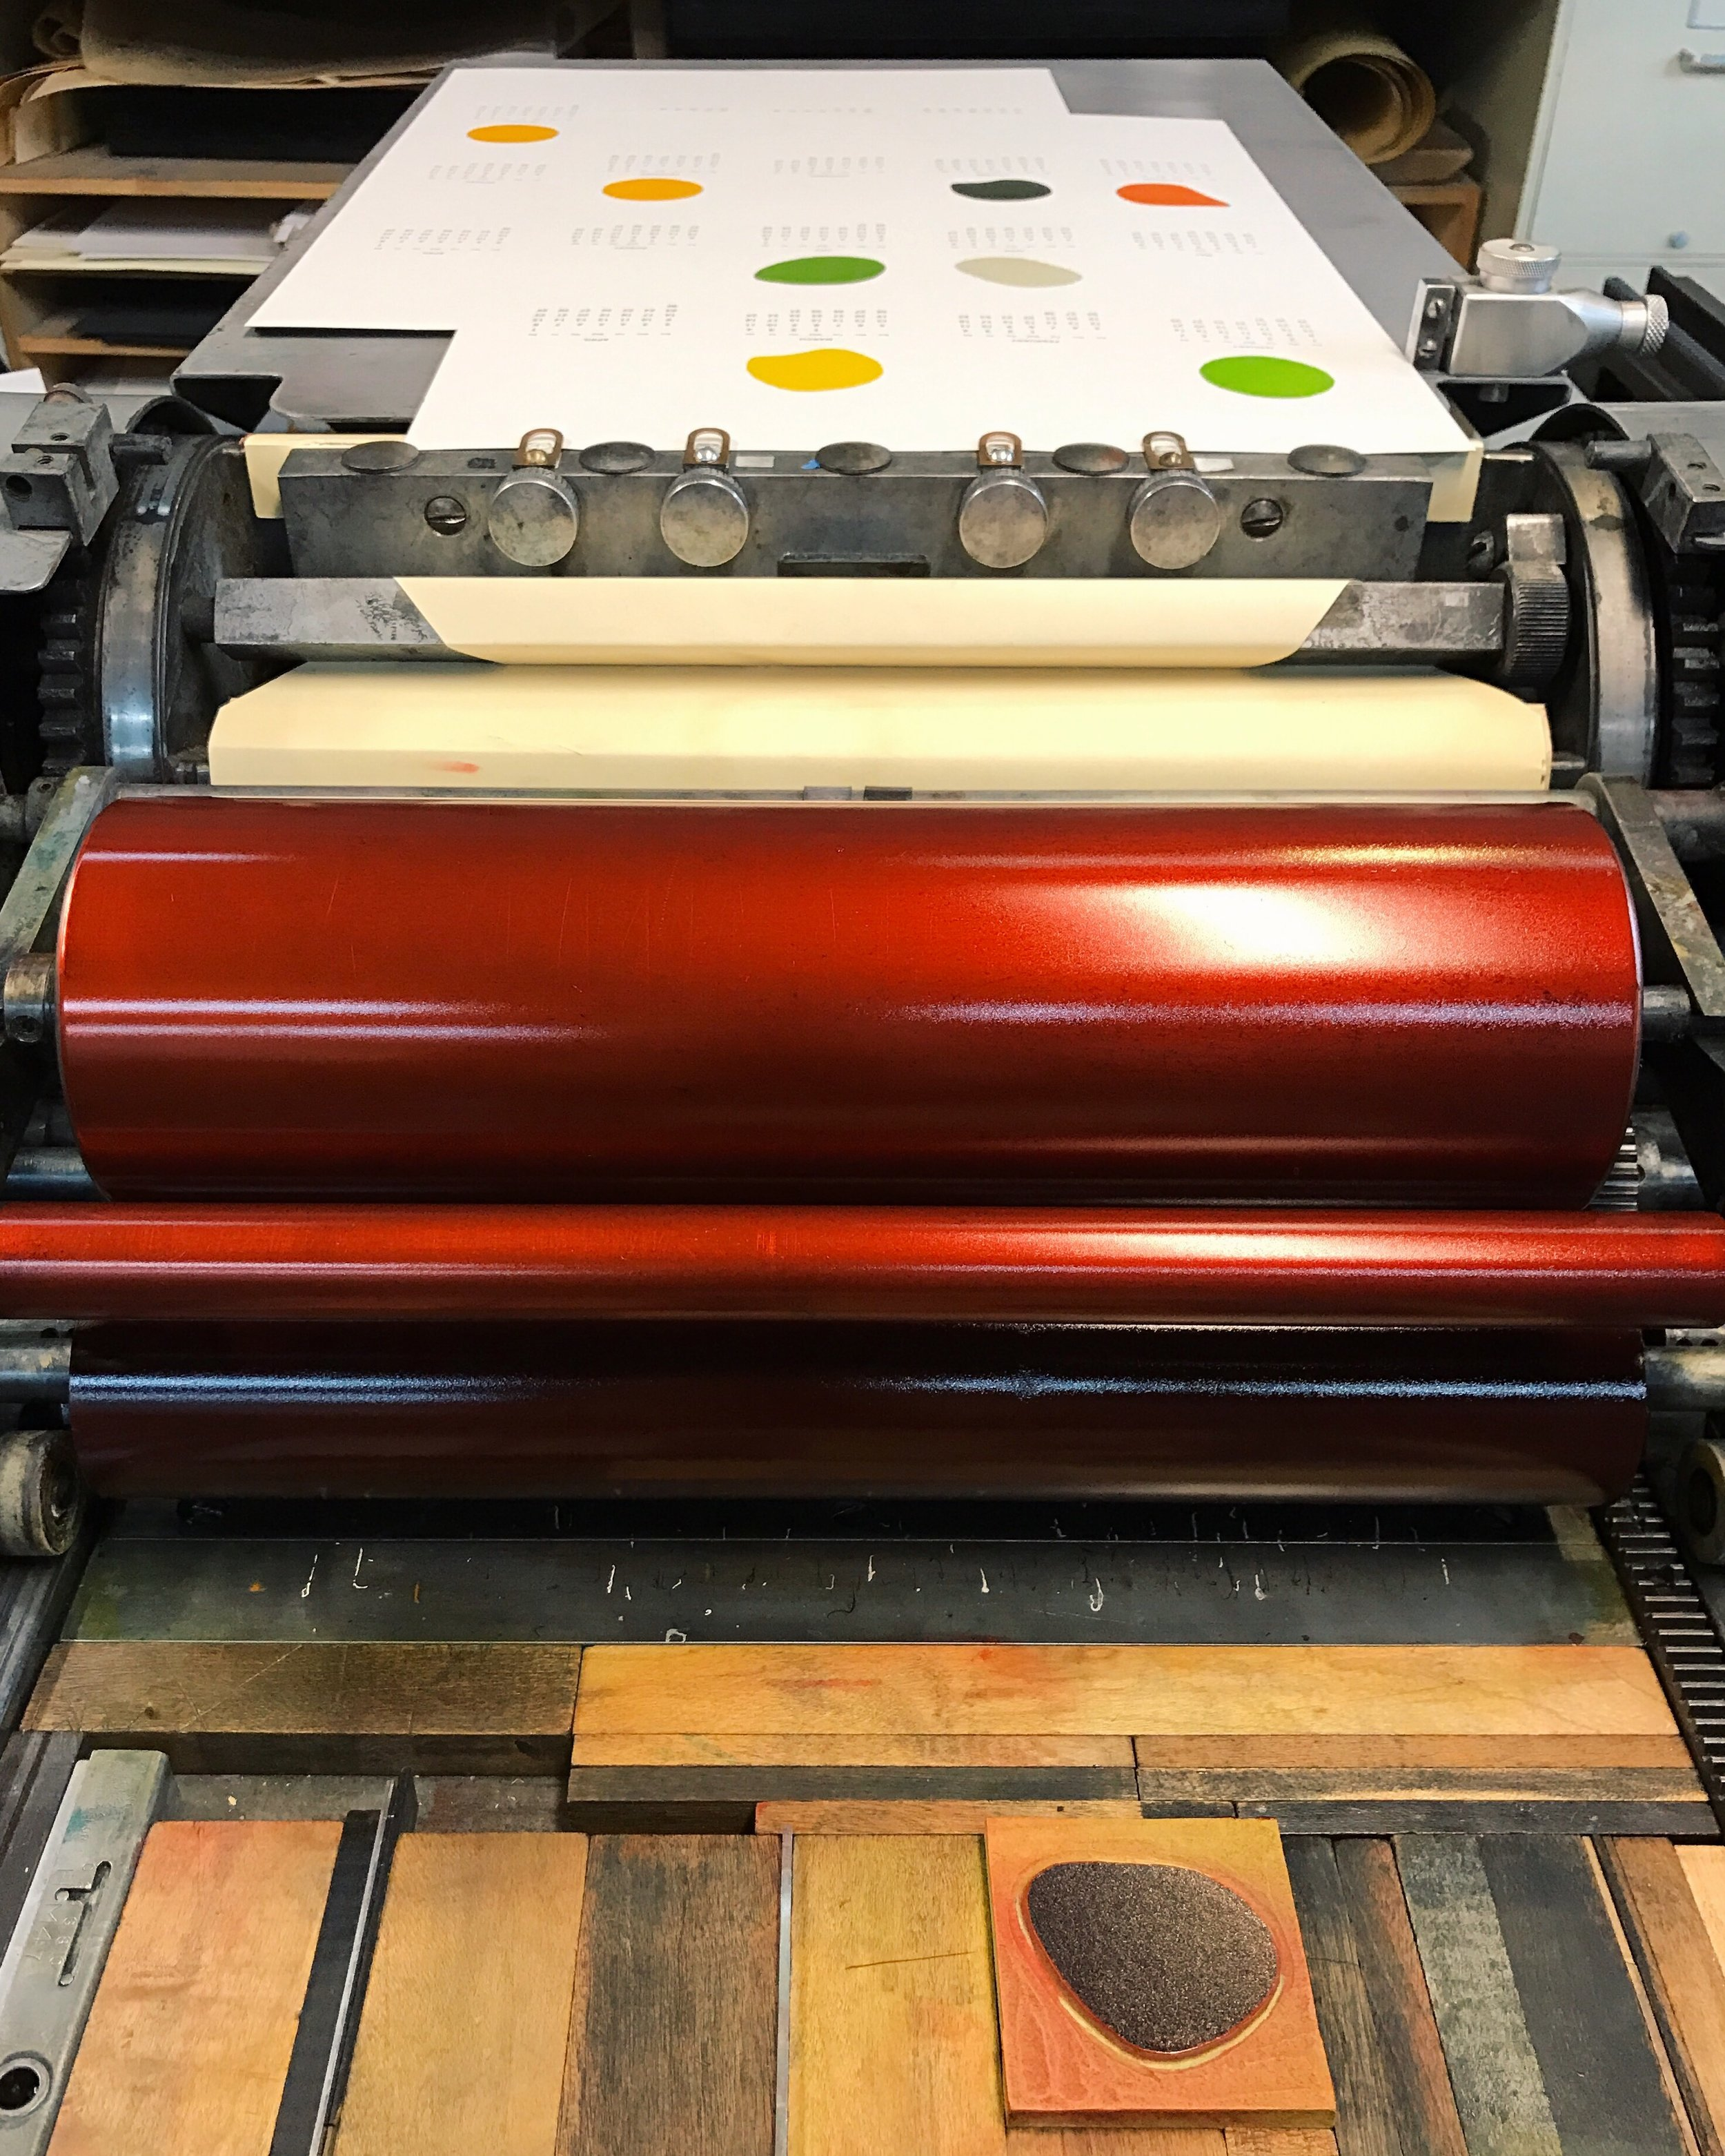 Printing a red February from a wood block